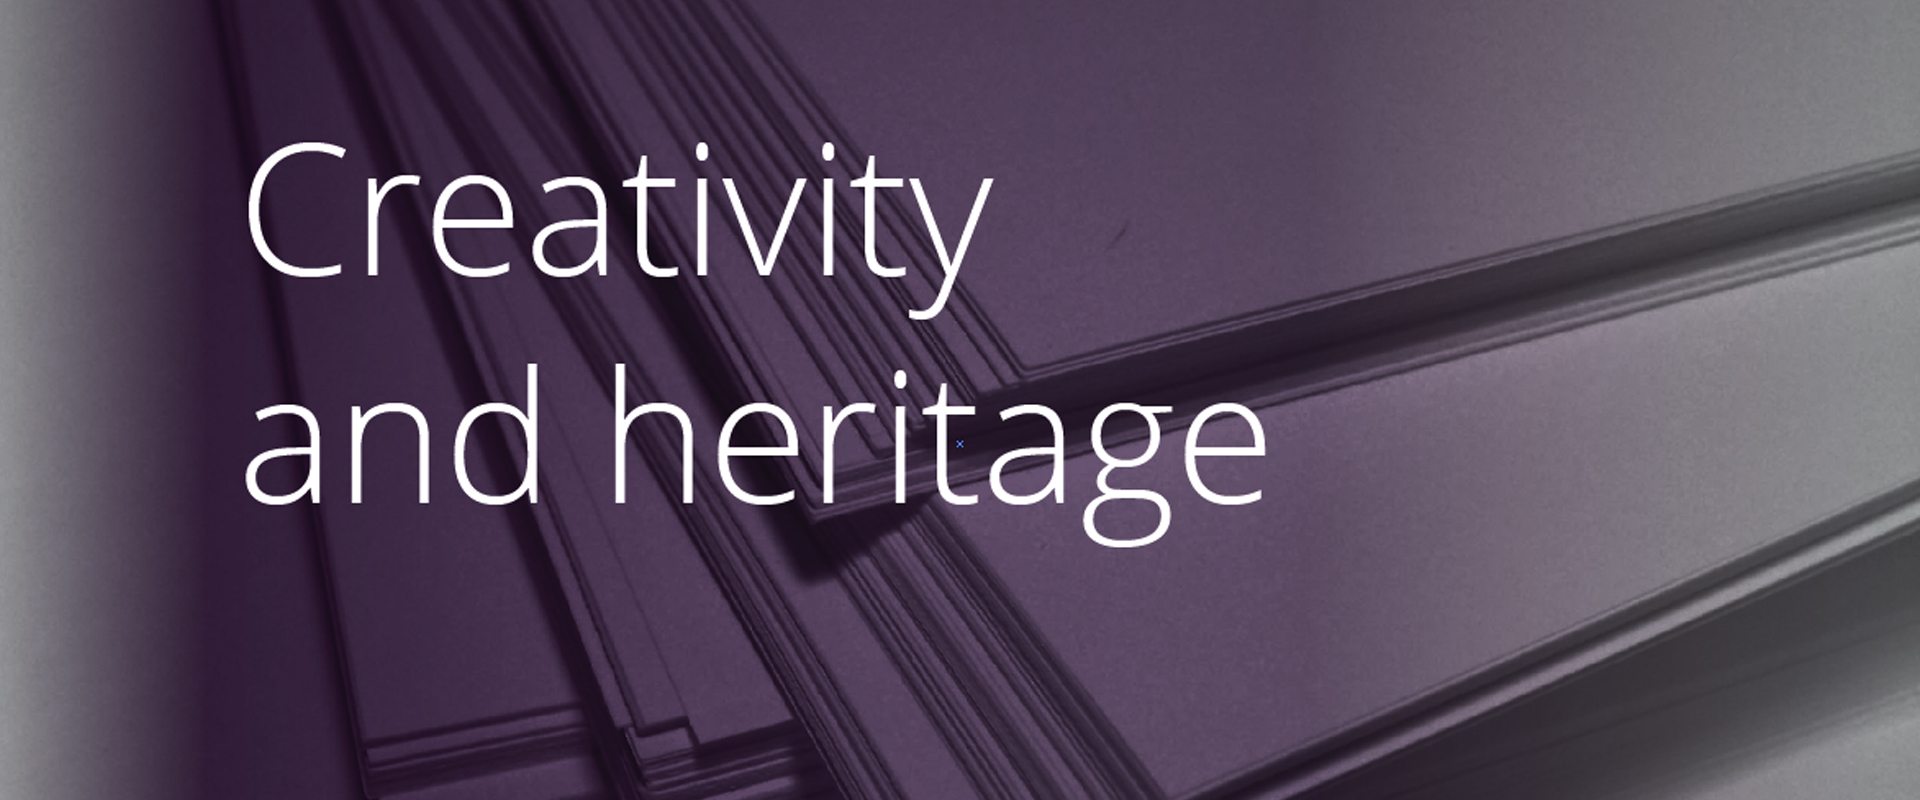 Creativity and heritage